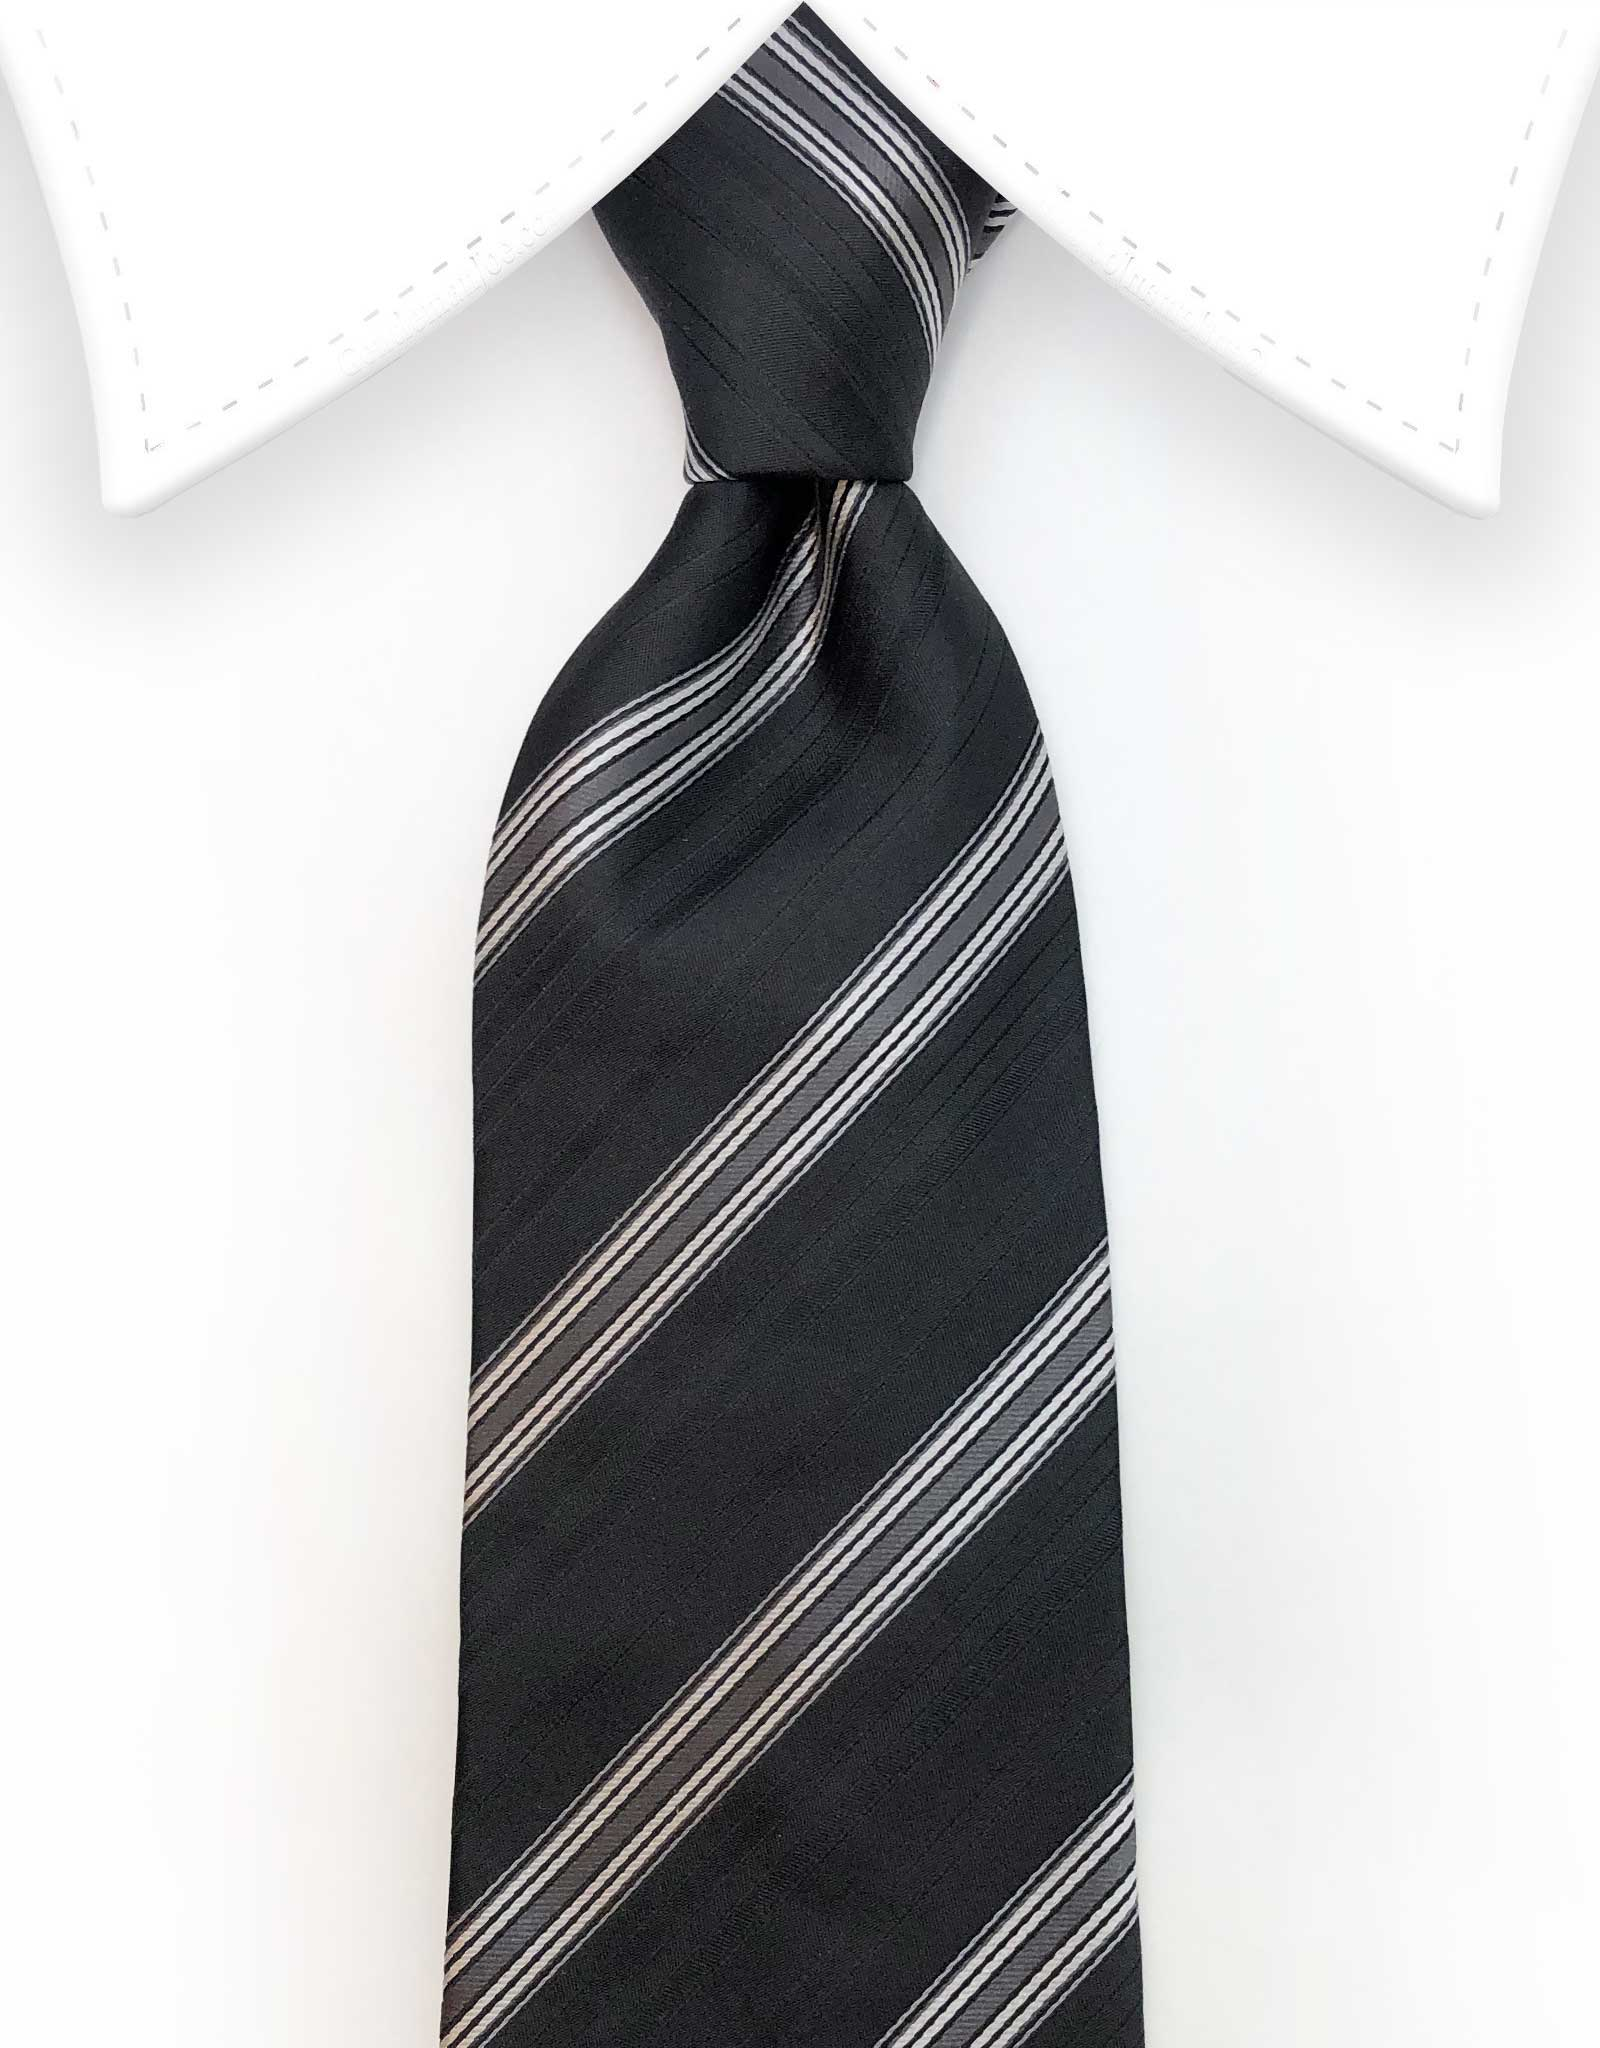 Black and Gray Striped Necktie